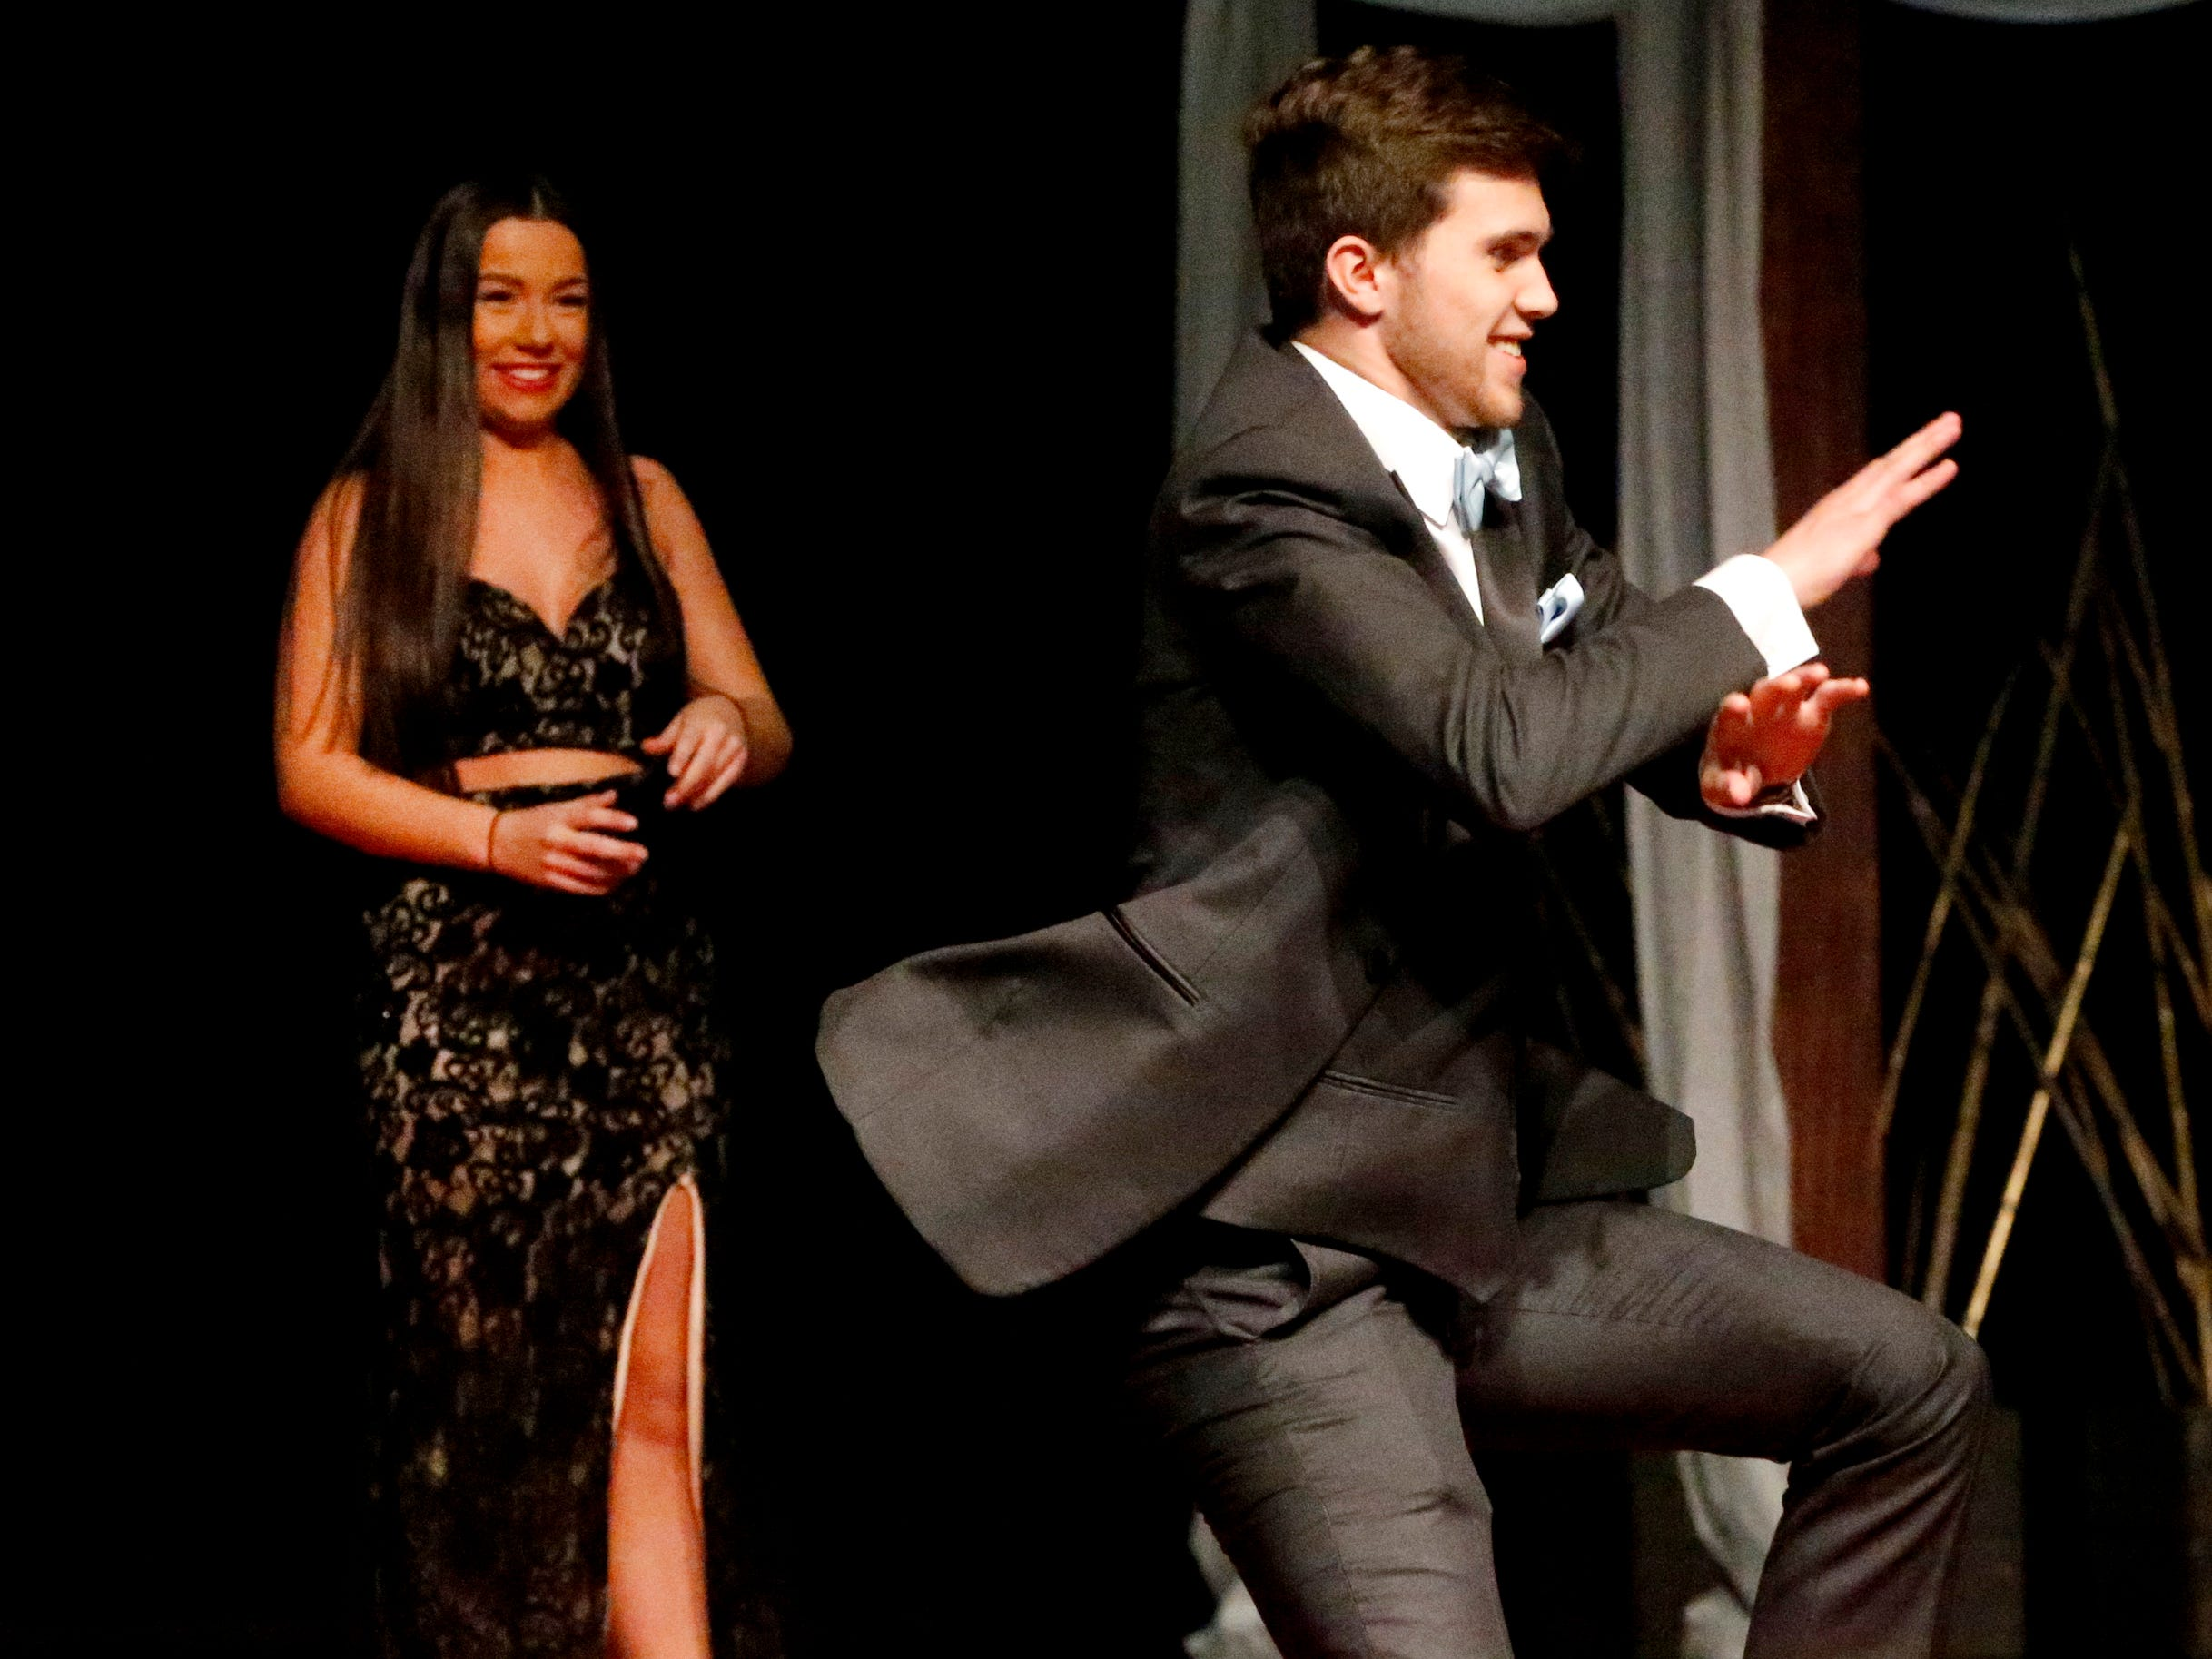 Connor Beckham steps forward and dances at the end of the runway as he shows off his tux after Whitney Tallant modeled her dress during the Siegel Prom Fashion show on Thursday, Feb. 14, 2019.